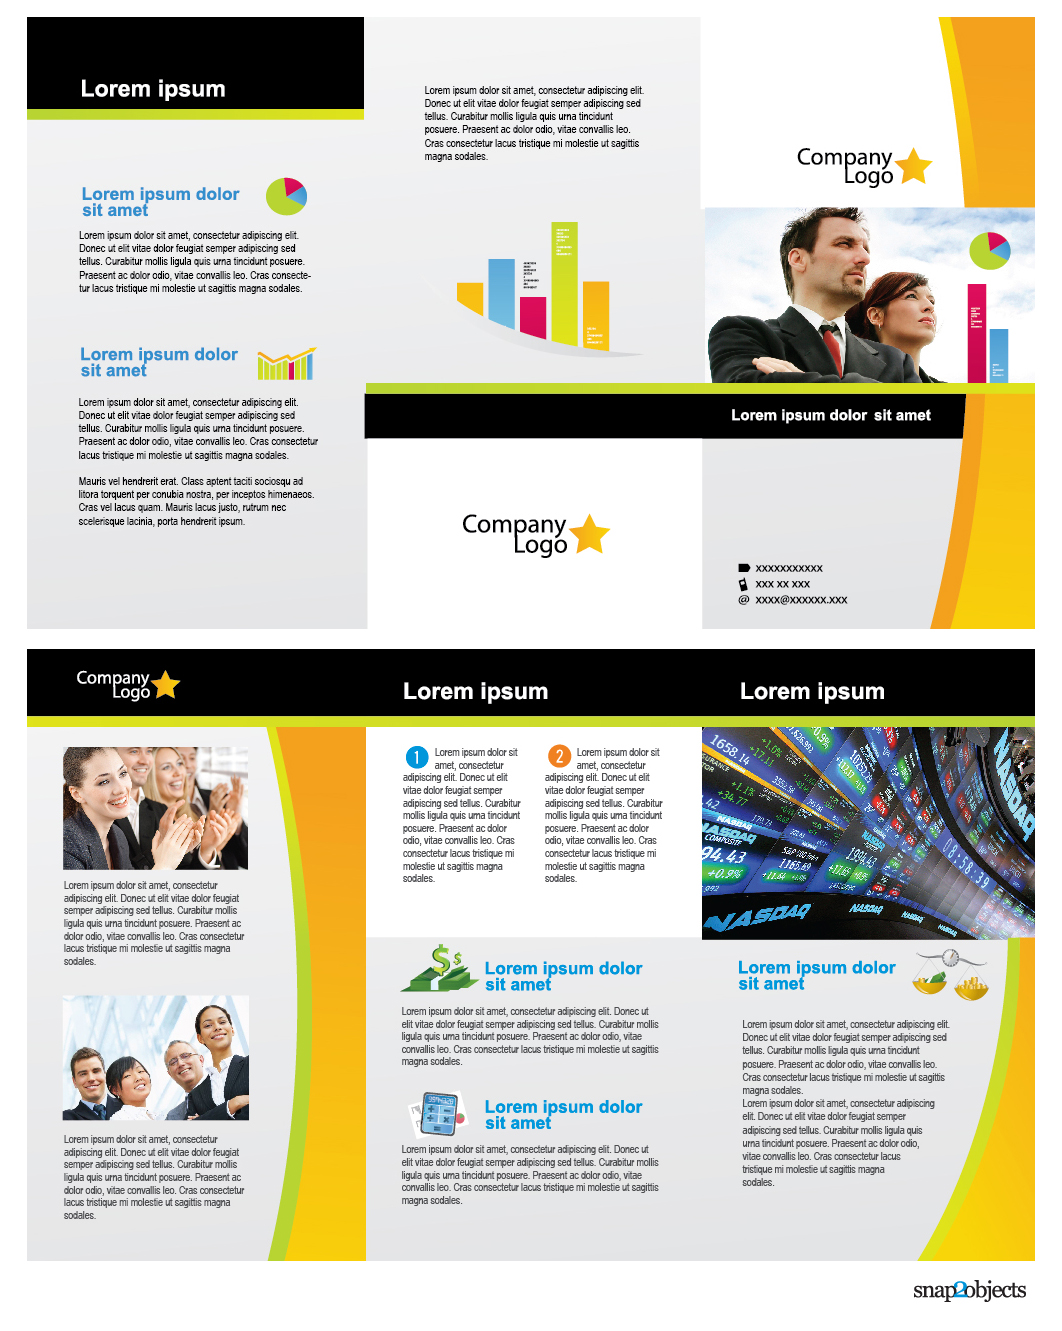 http://1.bp.blogspot.com/-0YOHqFRhY14/Tw131_LVxOI/AAAAAAAAAdw/iyxLKXJDuhE/s1600/Business-Vector-Brochure-Template-in-Illustrator.jpg